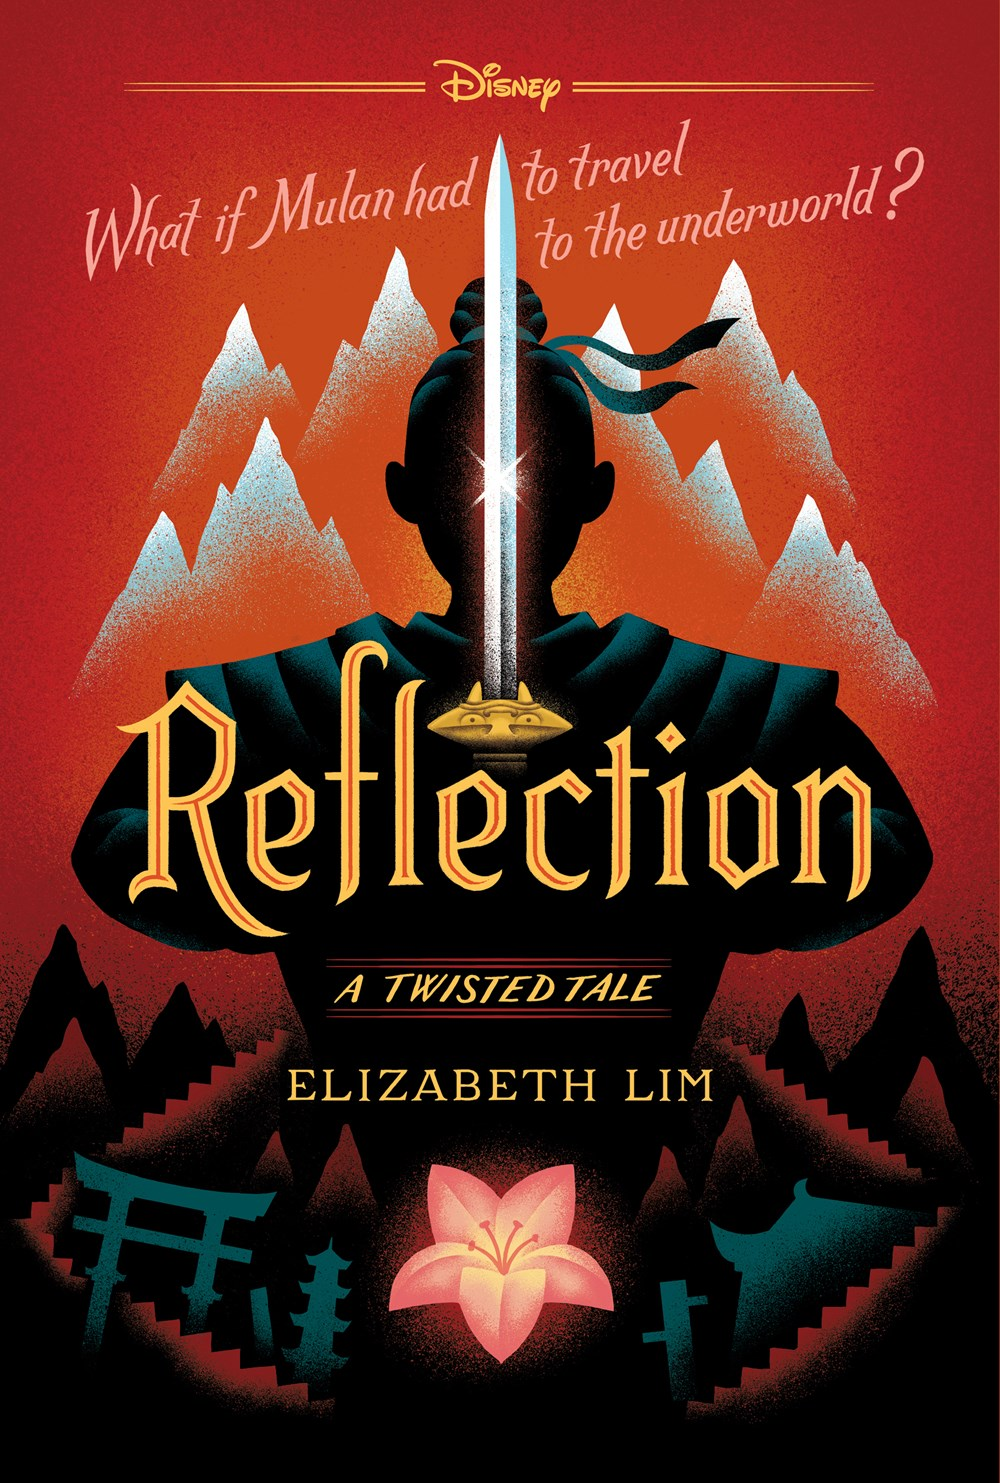 Reflection (Twisted Tales, #4) by Elizabeth Lim, Disney Storybook Art Team